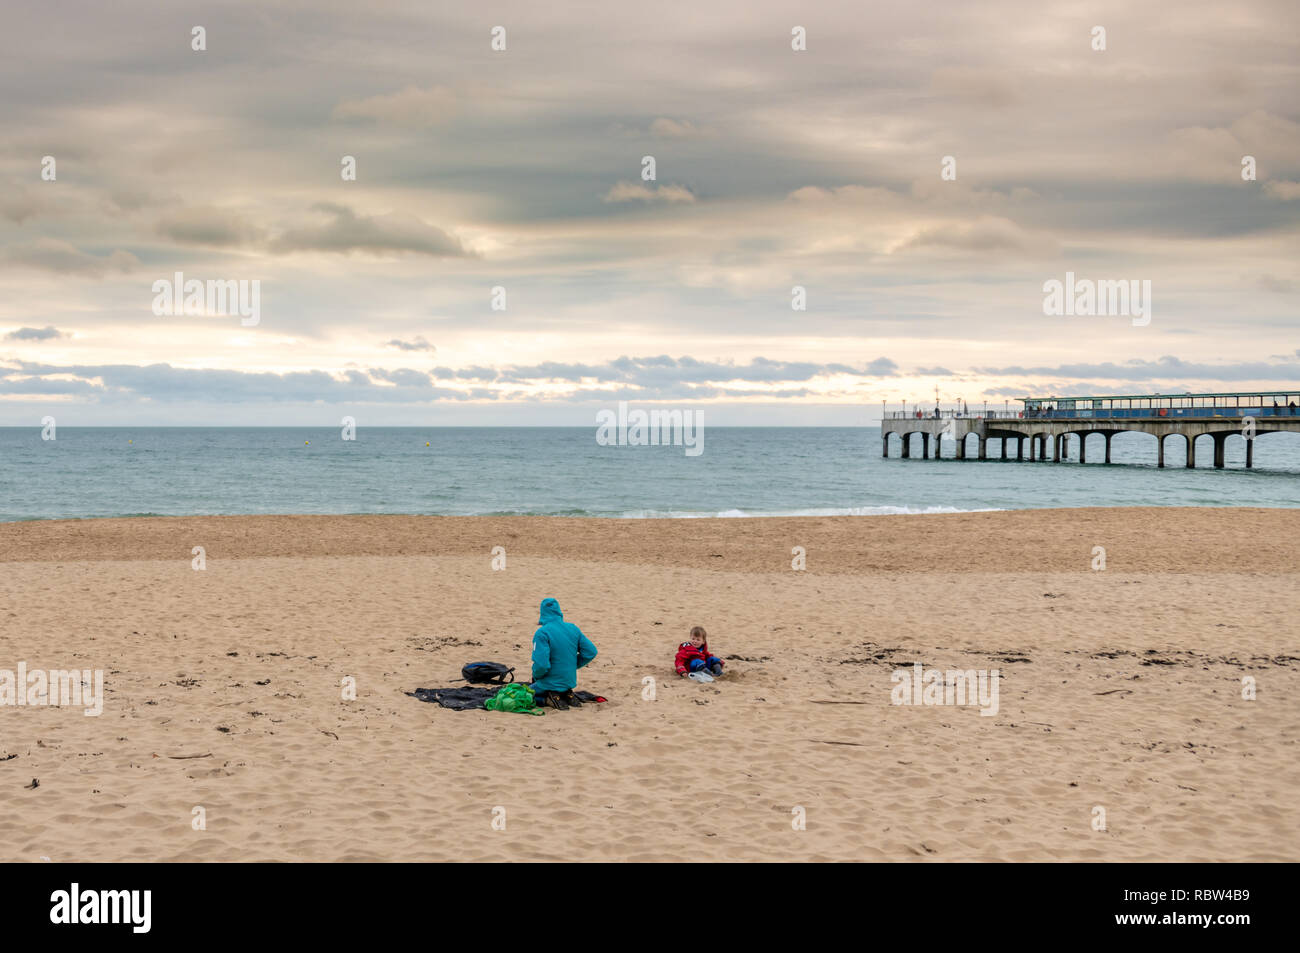 Bournemouth, Dorset, UK. 12th January 2019. Sitting on the beach, despite the cold weather in Bournemouth. Credit: Thomas Faull/Alamy Live News Stock Photo